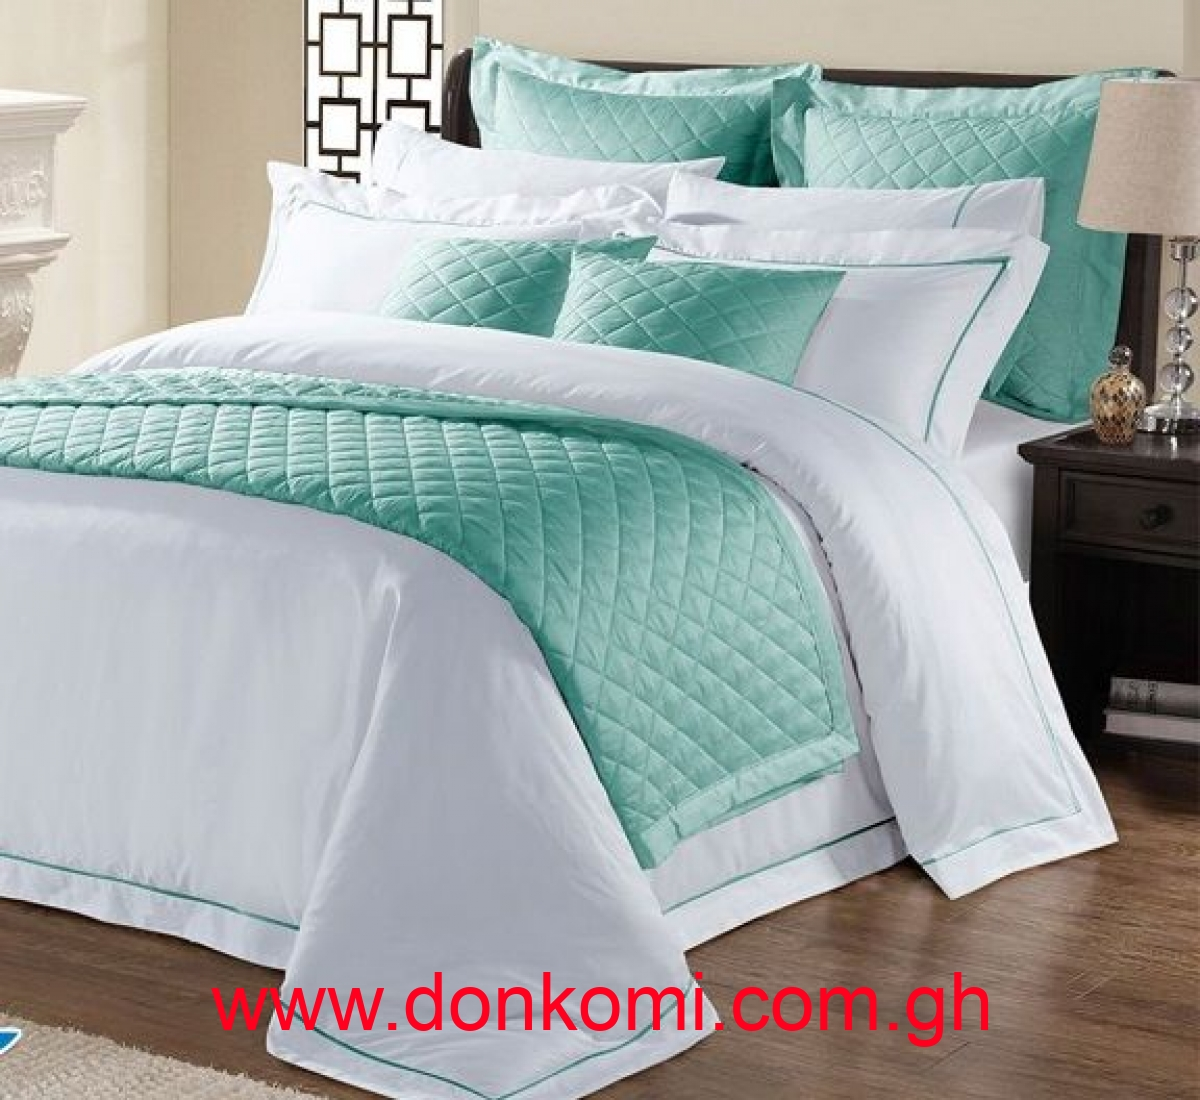 Bed Sheet 100% Cotton